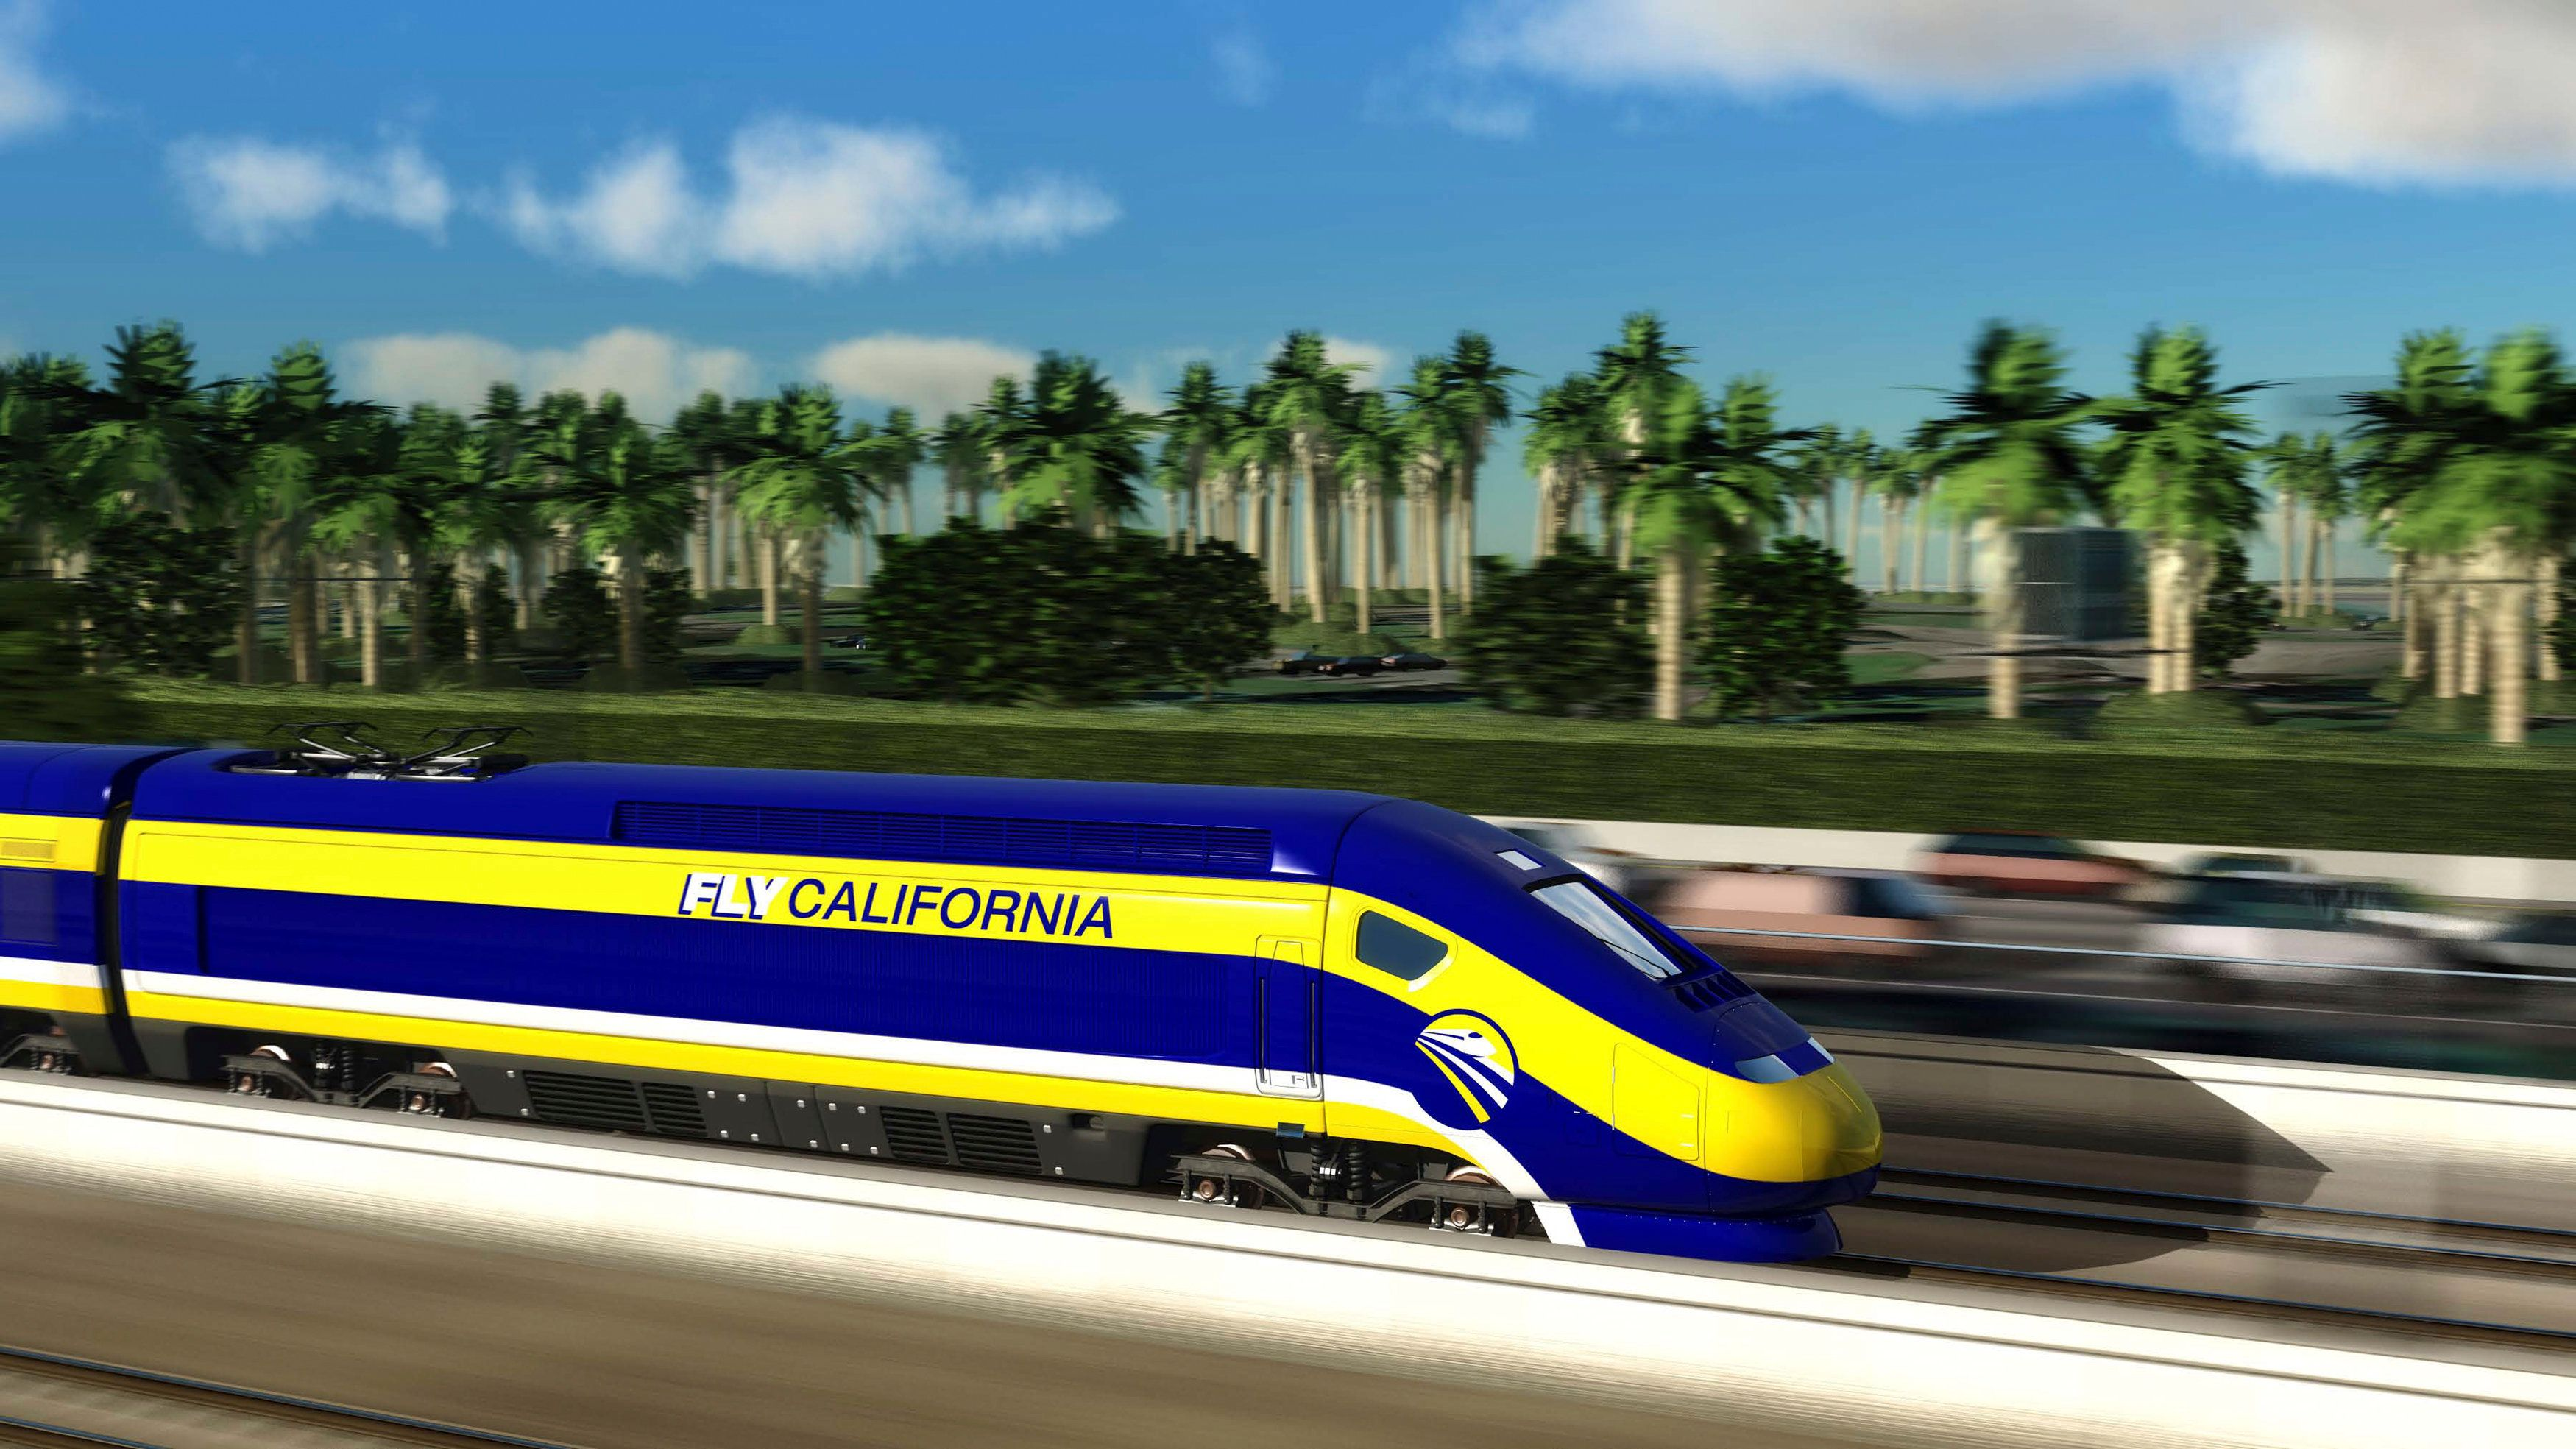 An artist's rendition courtesy of the California High-Speed Rail Authority shows a high speed train passing through Mission Beach, California. The California state Assembly approved an $8 billion high-speed rail financing plan that likely will face a tougher vote in the Senate over the system's projected $68 billion cost and concerns about its management. REUTERS/California High-Speed Rail Authority/Handout (UNITED STATES - Tags: TRANSPORT POLITICS BUSINESS) FOR EDITORIAL USE ONLY. NOT FOR SALE FOR MARKETING OR ADVERTISING CAMPAIGNS. THIS IMAGE HAS BEEN SUPPLIED BY A THIRD PARTY. IT IS DISTRIBUTED, EXACTLY AS RECEIVED BY REUTERS, AS A SERVICE TO CLIENTS